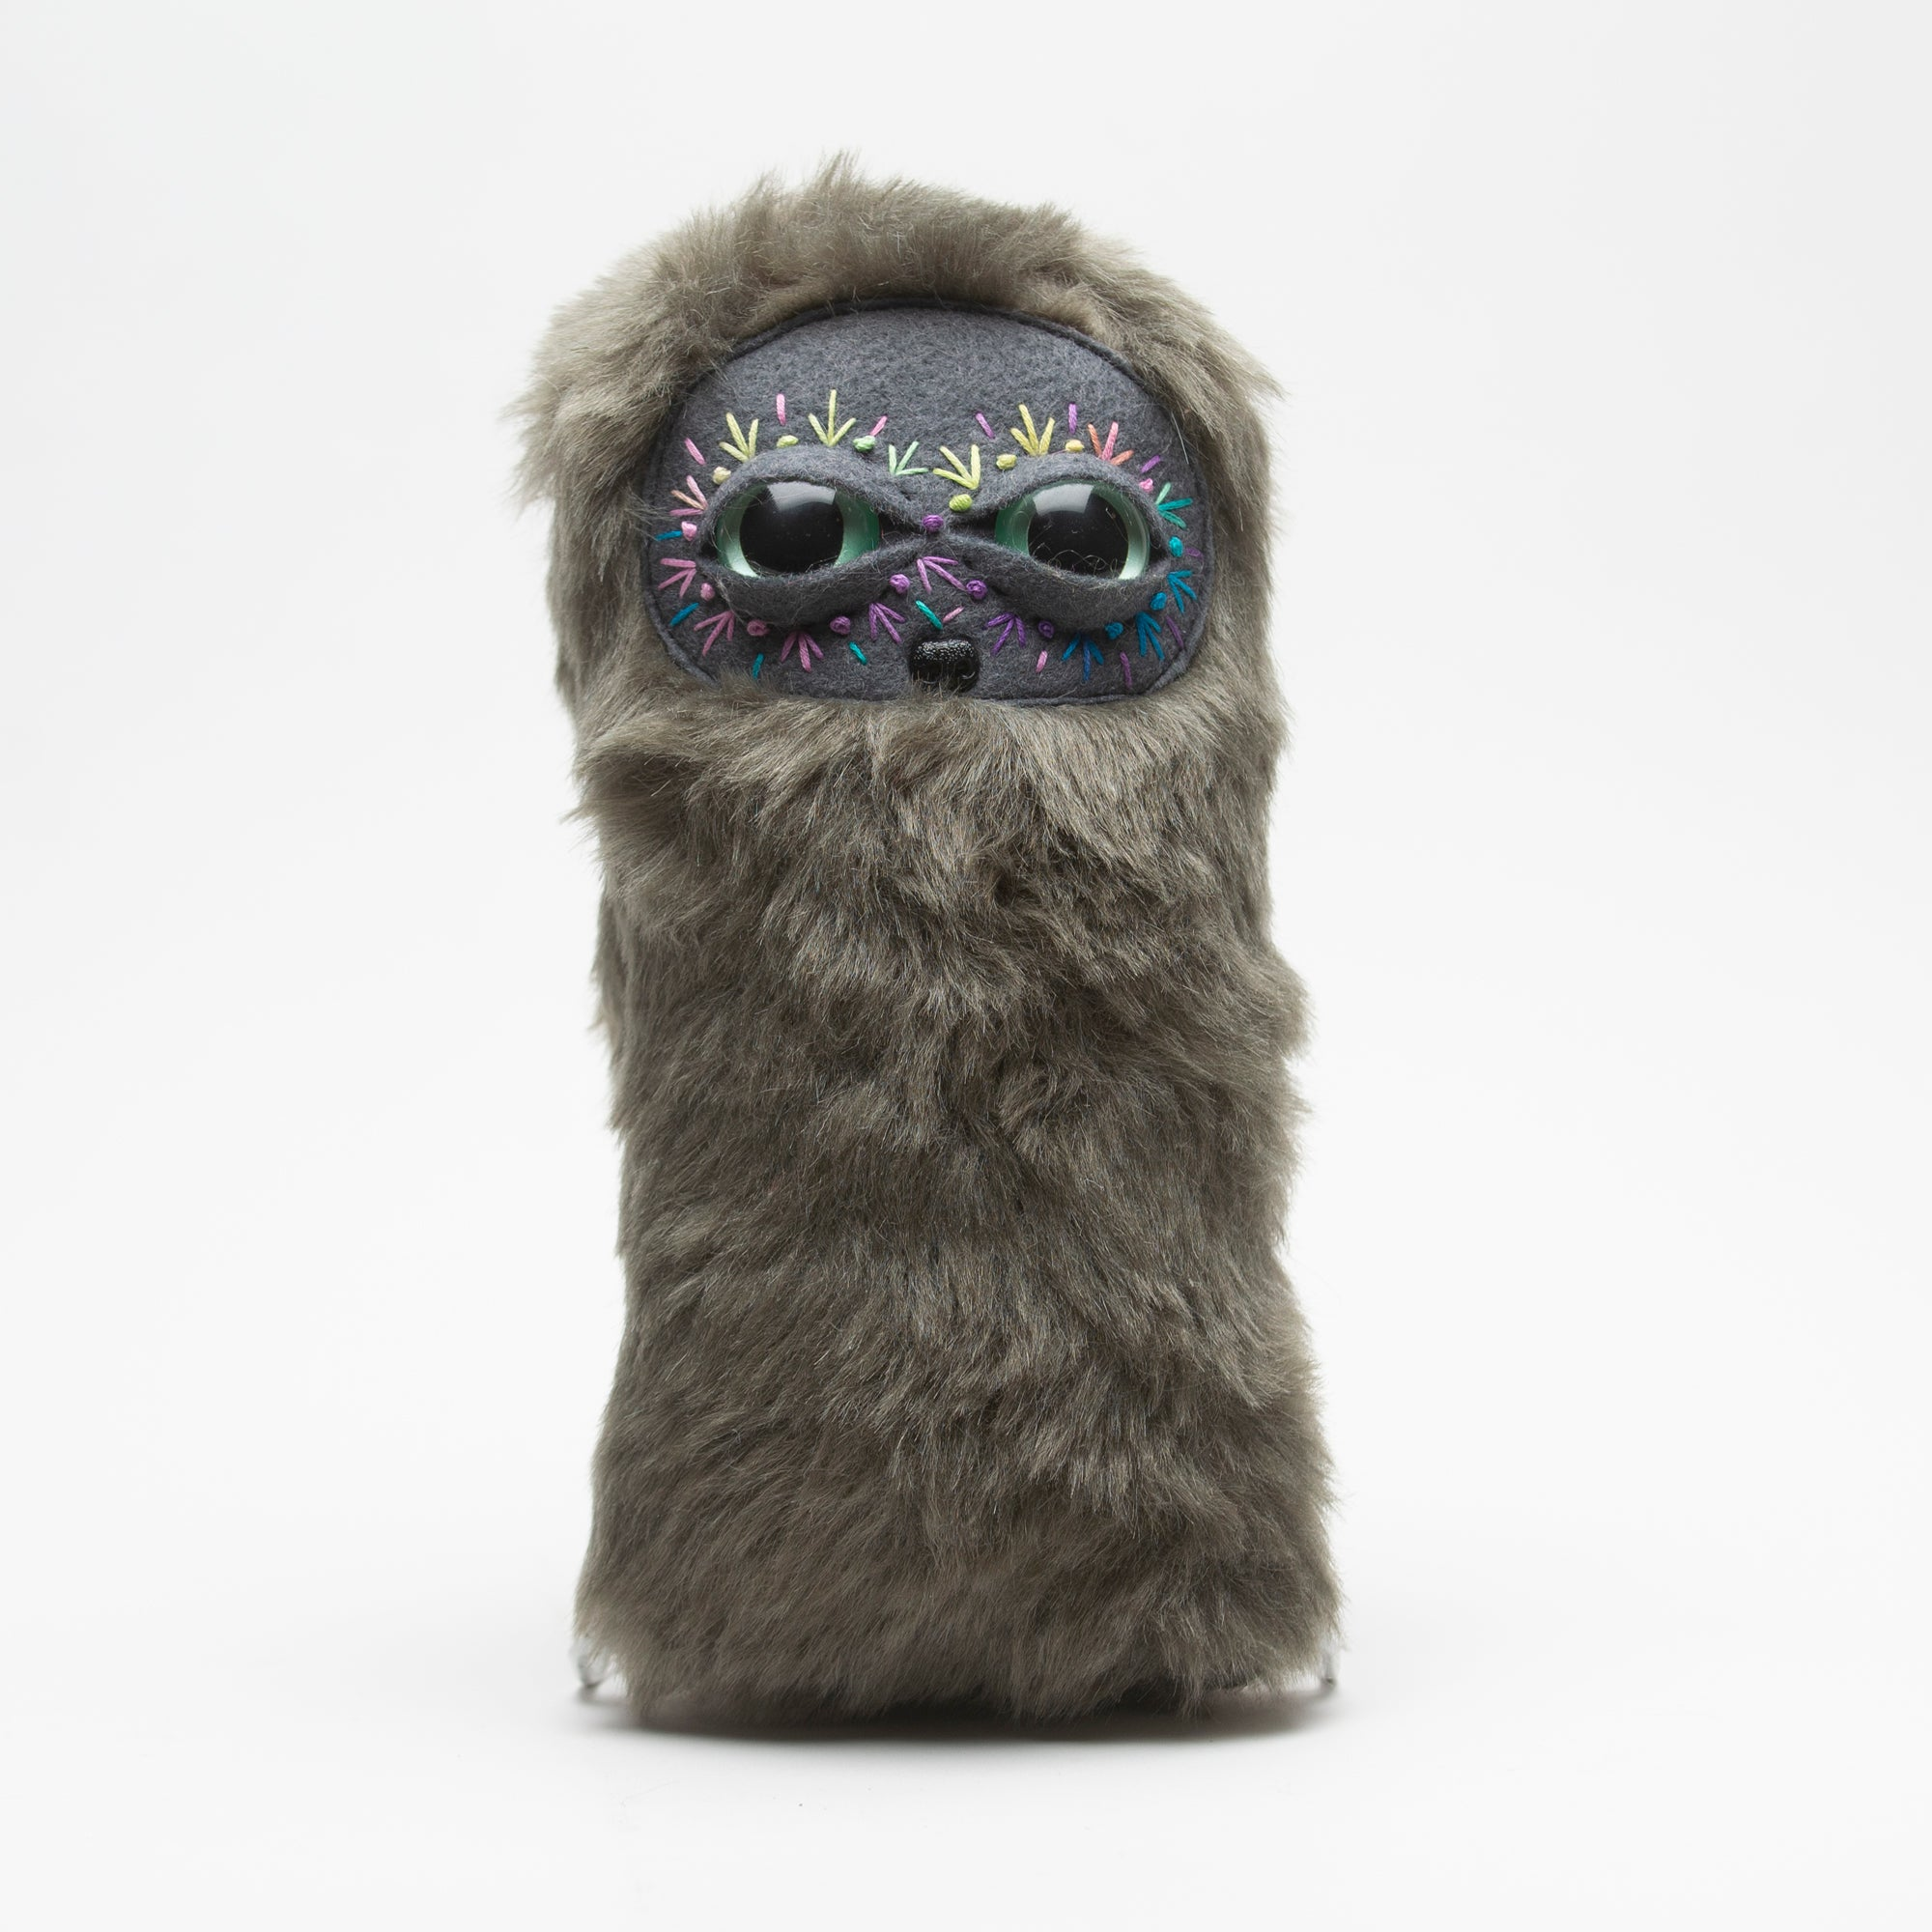 Cool Critter Stuffed Animal - Rainbow Face Gray Furry